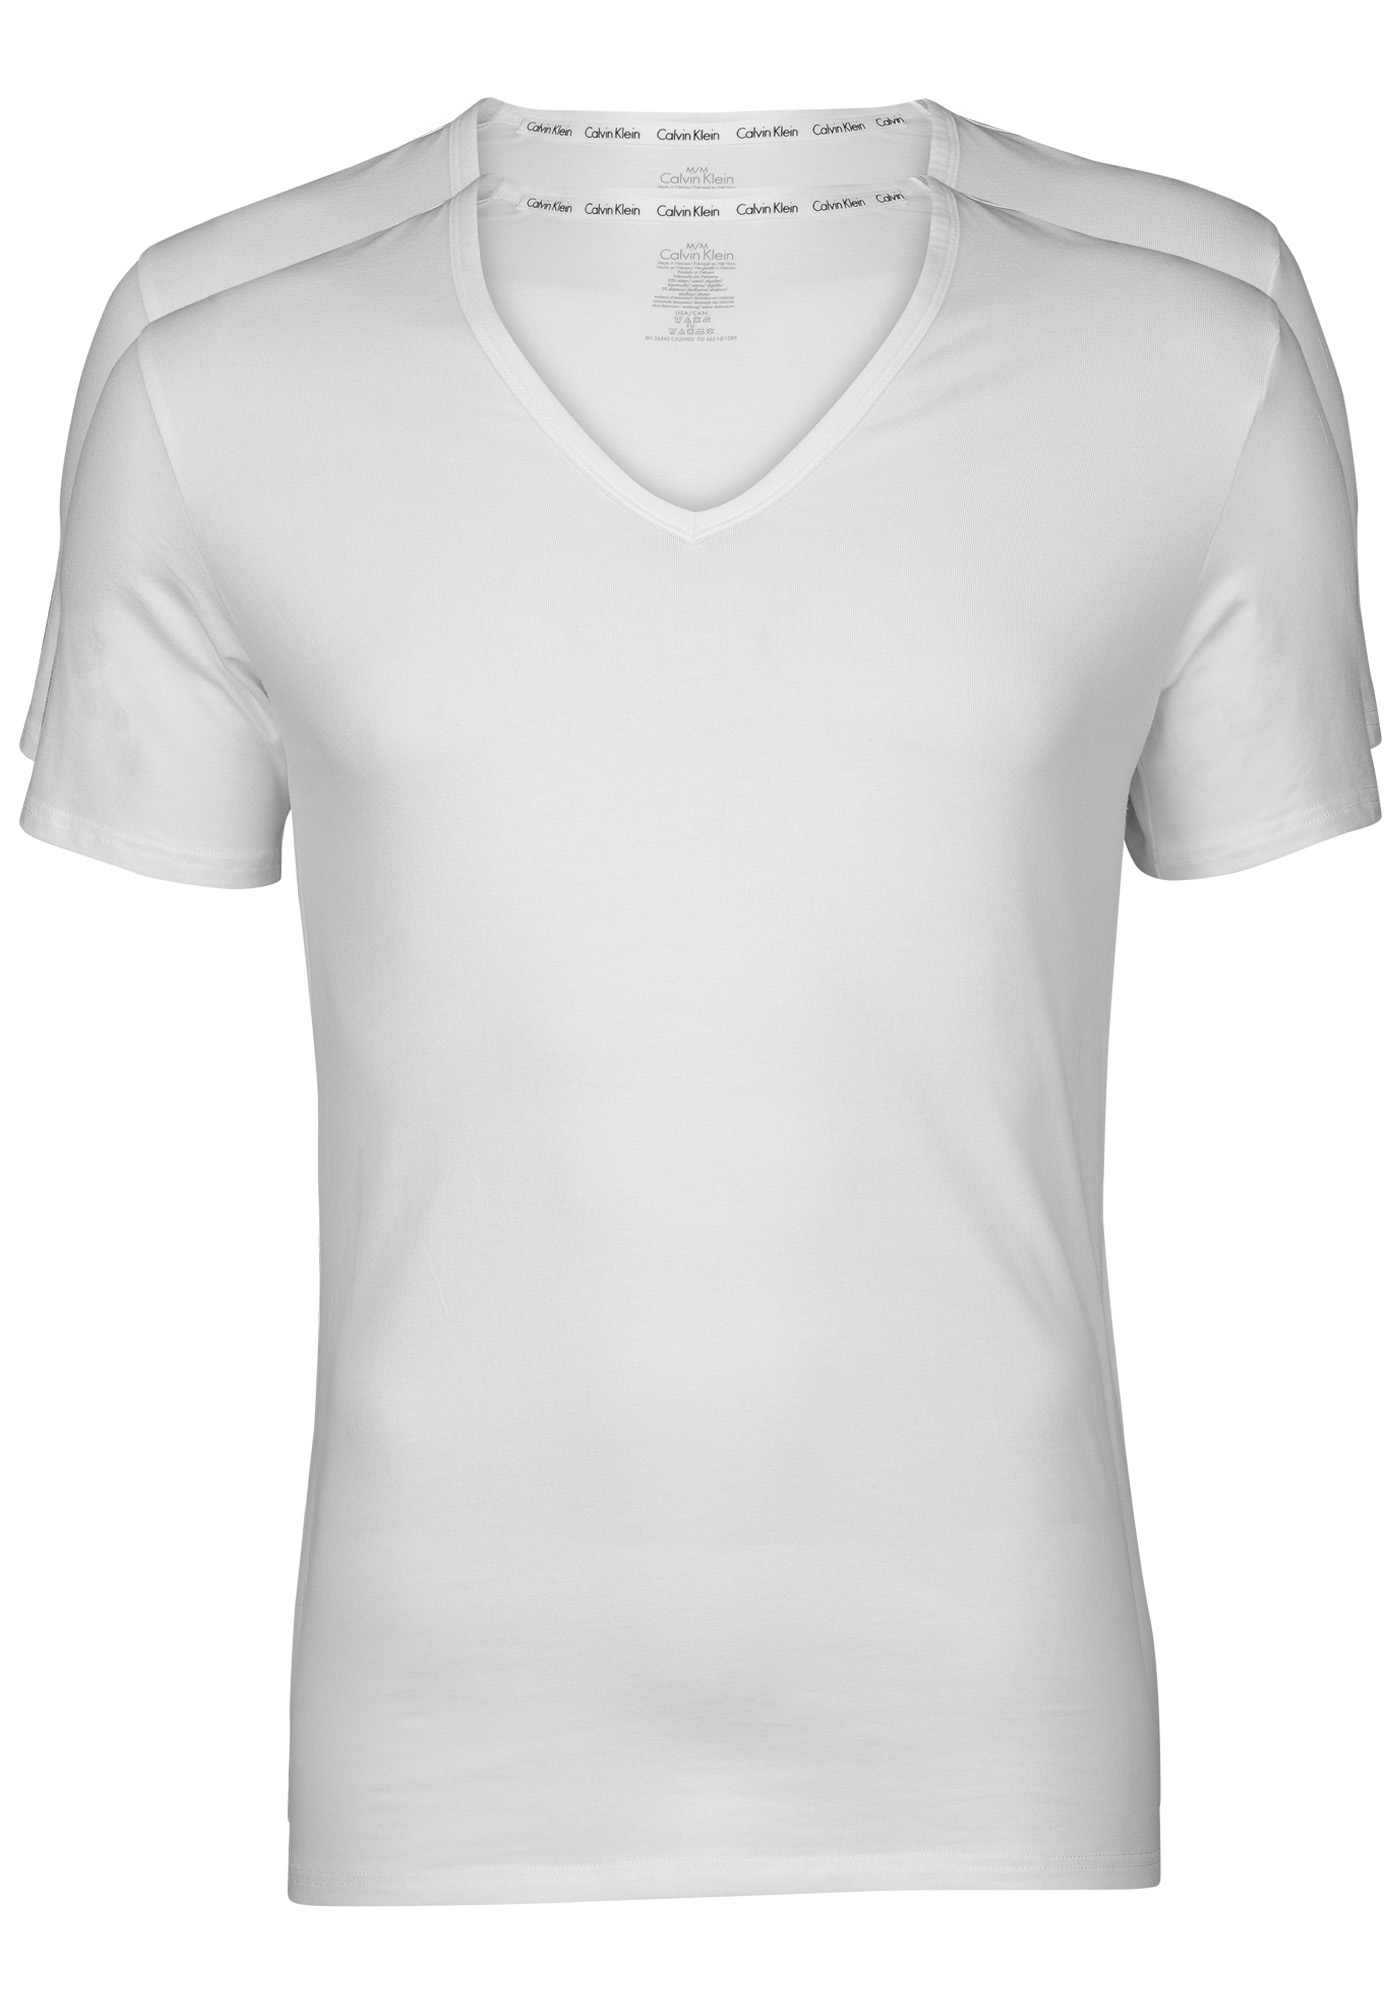 7e3a258e35 Calvin Klein Modern Cotton stretch T-shirts (2-pack)